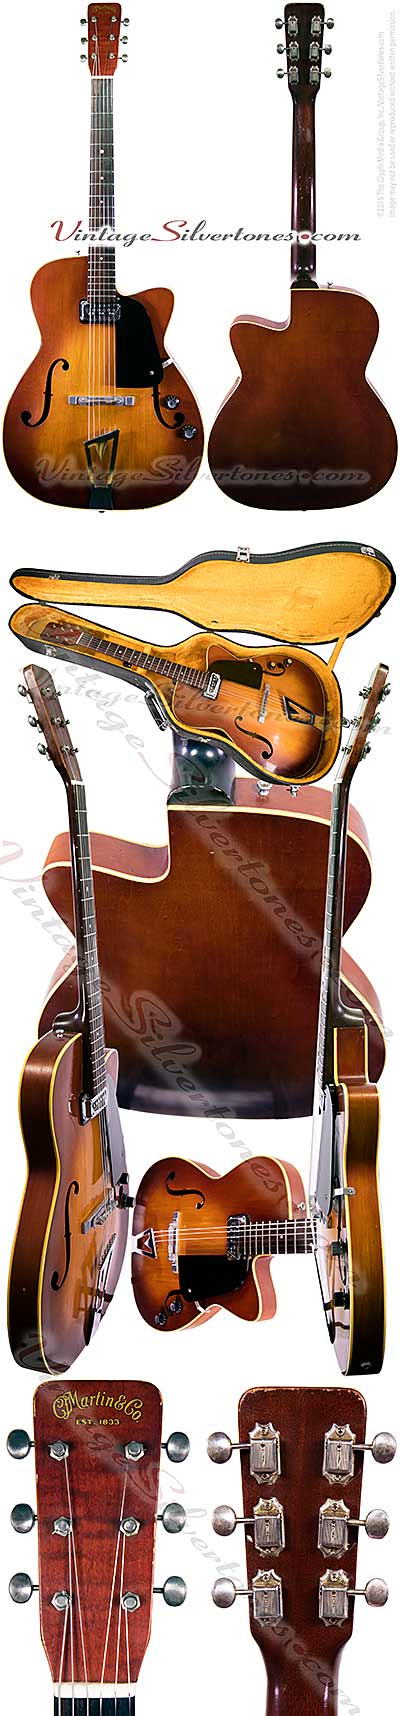 Martin F50 - single pickup tobacco-burst, semi-hollow archtop guitar 1961